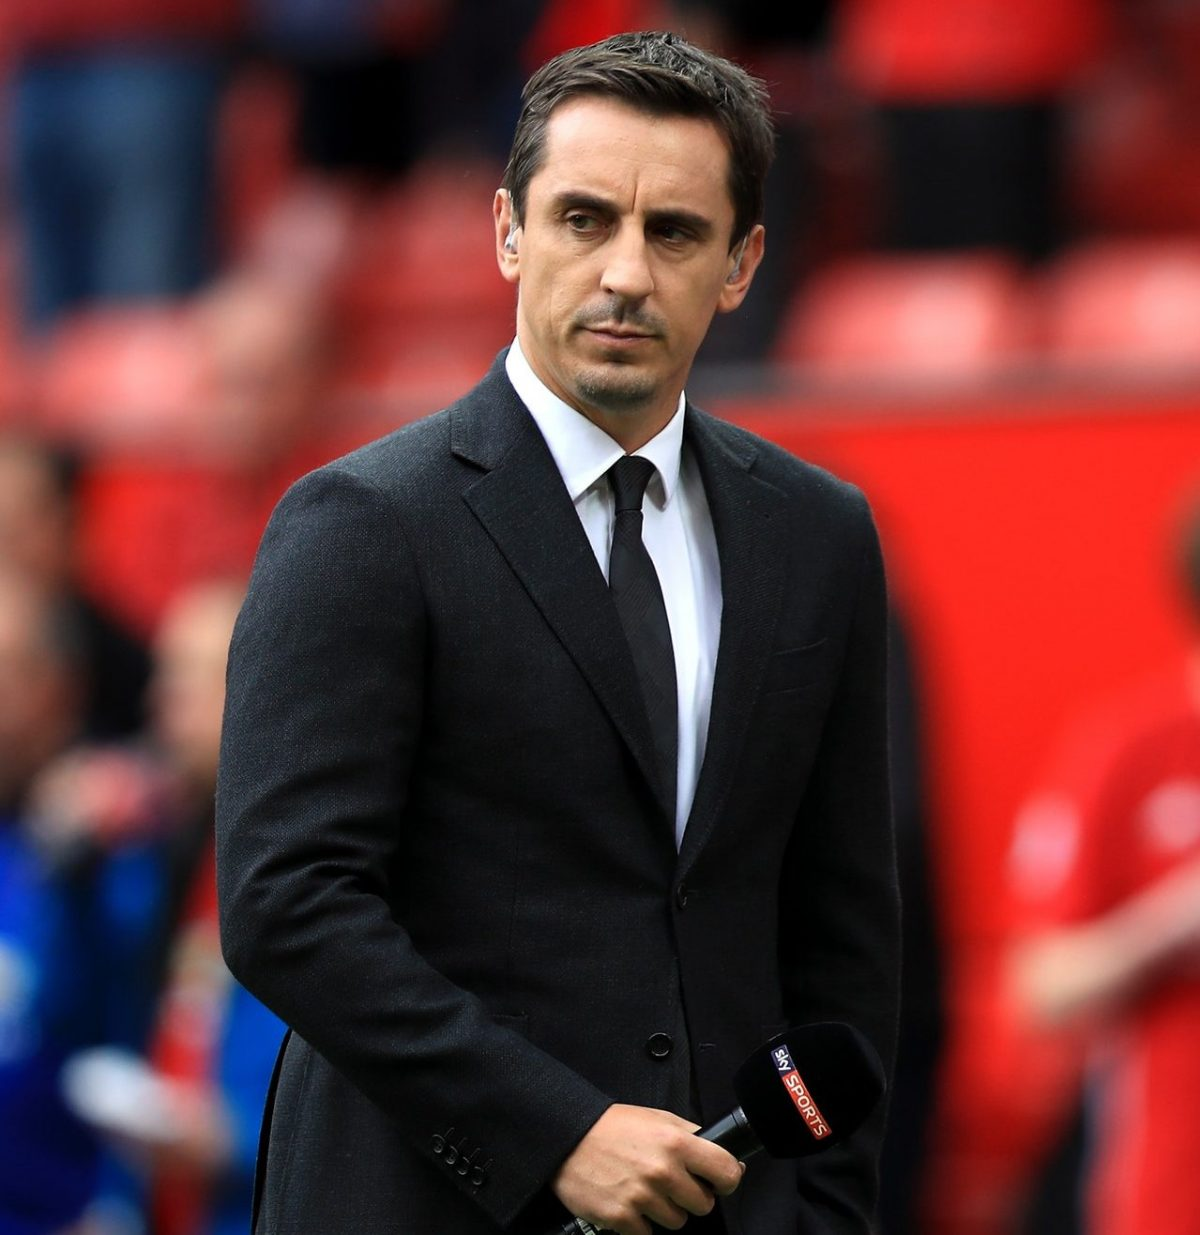 Neville Predicts Big Signings For Reds